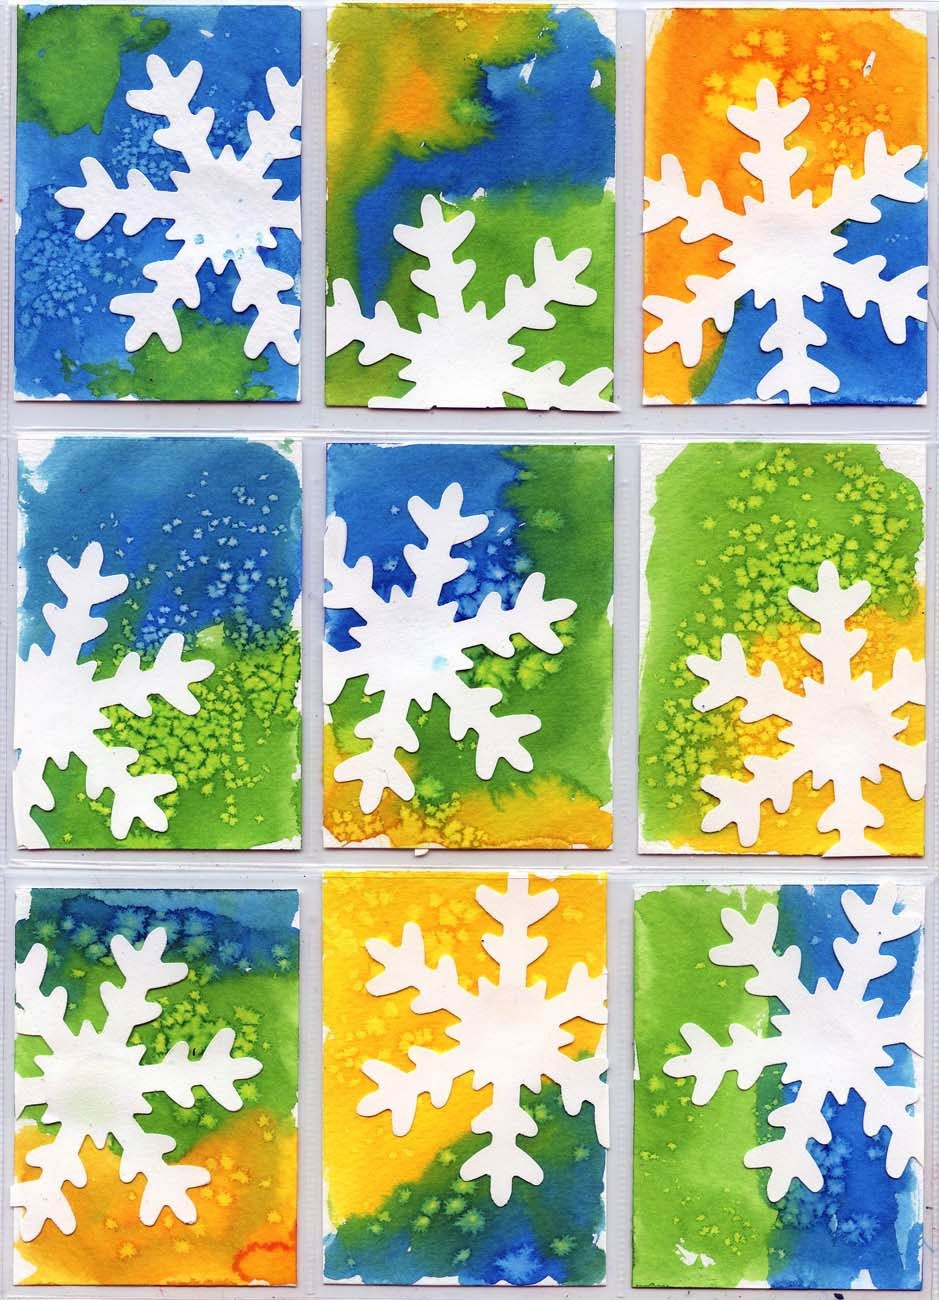 Best ideas about Art Projects For Kids . Save or Pin Snowflake ATC Art Projects for Kids Now.